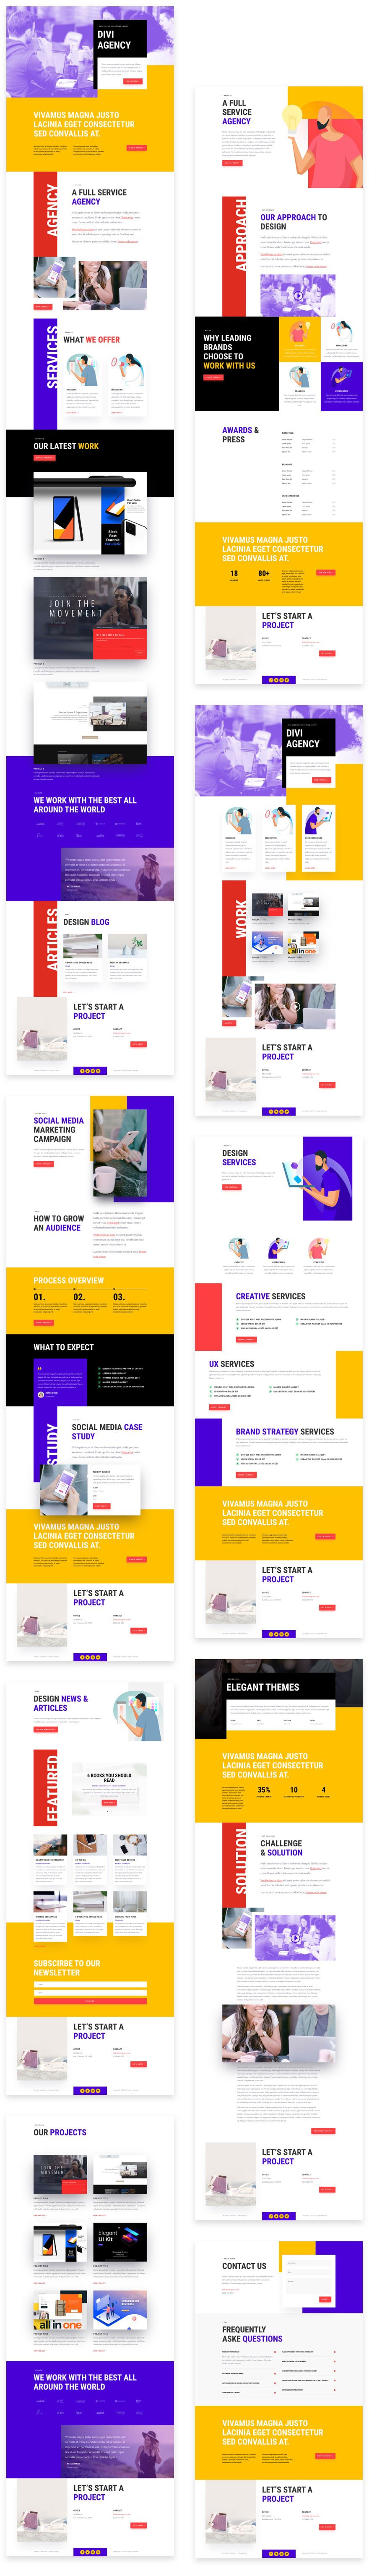 Advertising Agency Layout Pack